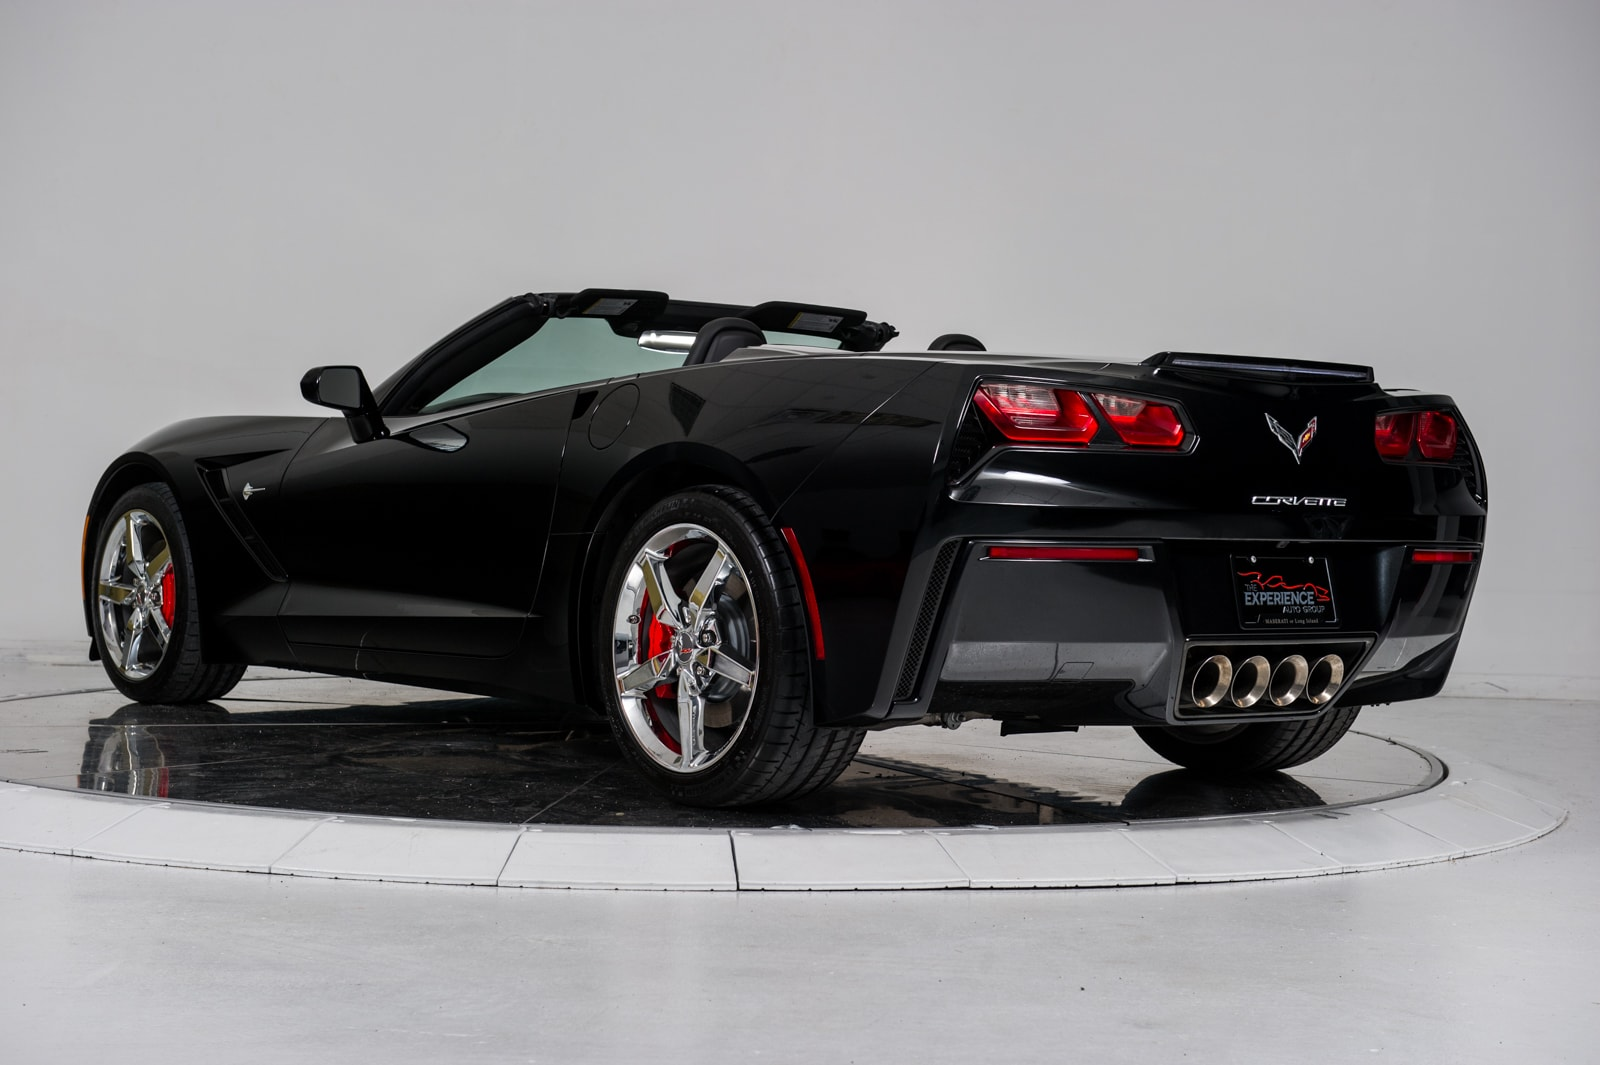 used 2014 chevrolet corvette stingray convertible 3lt for sale plainview near long island ny. Black Bedroom Furniture Sets. Home Design Ideas